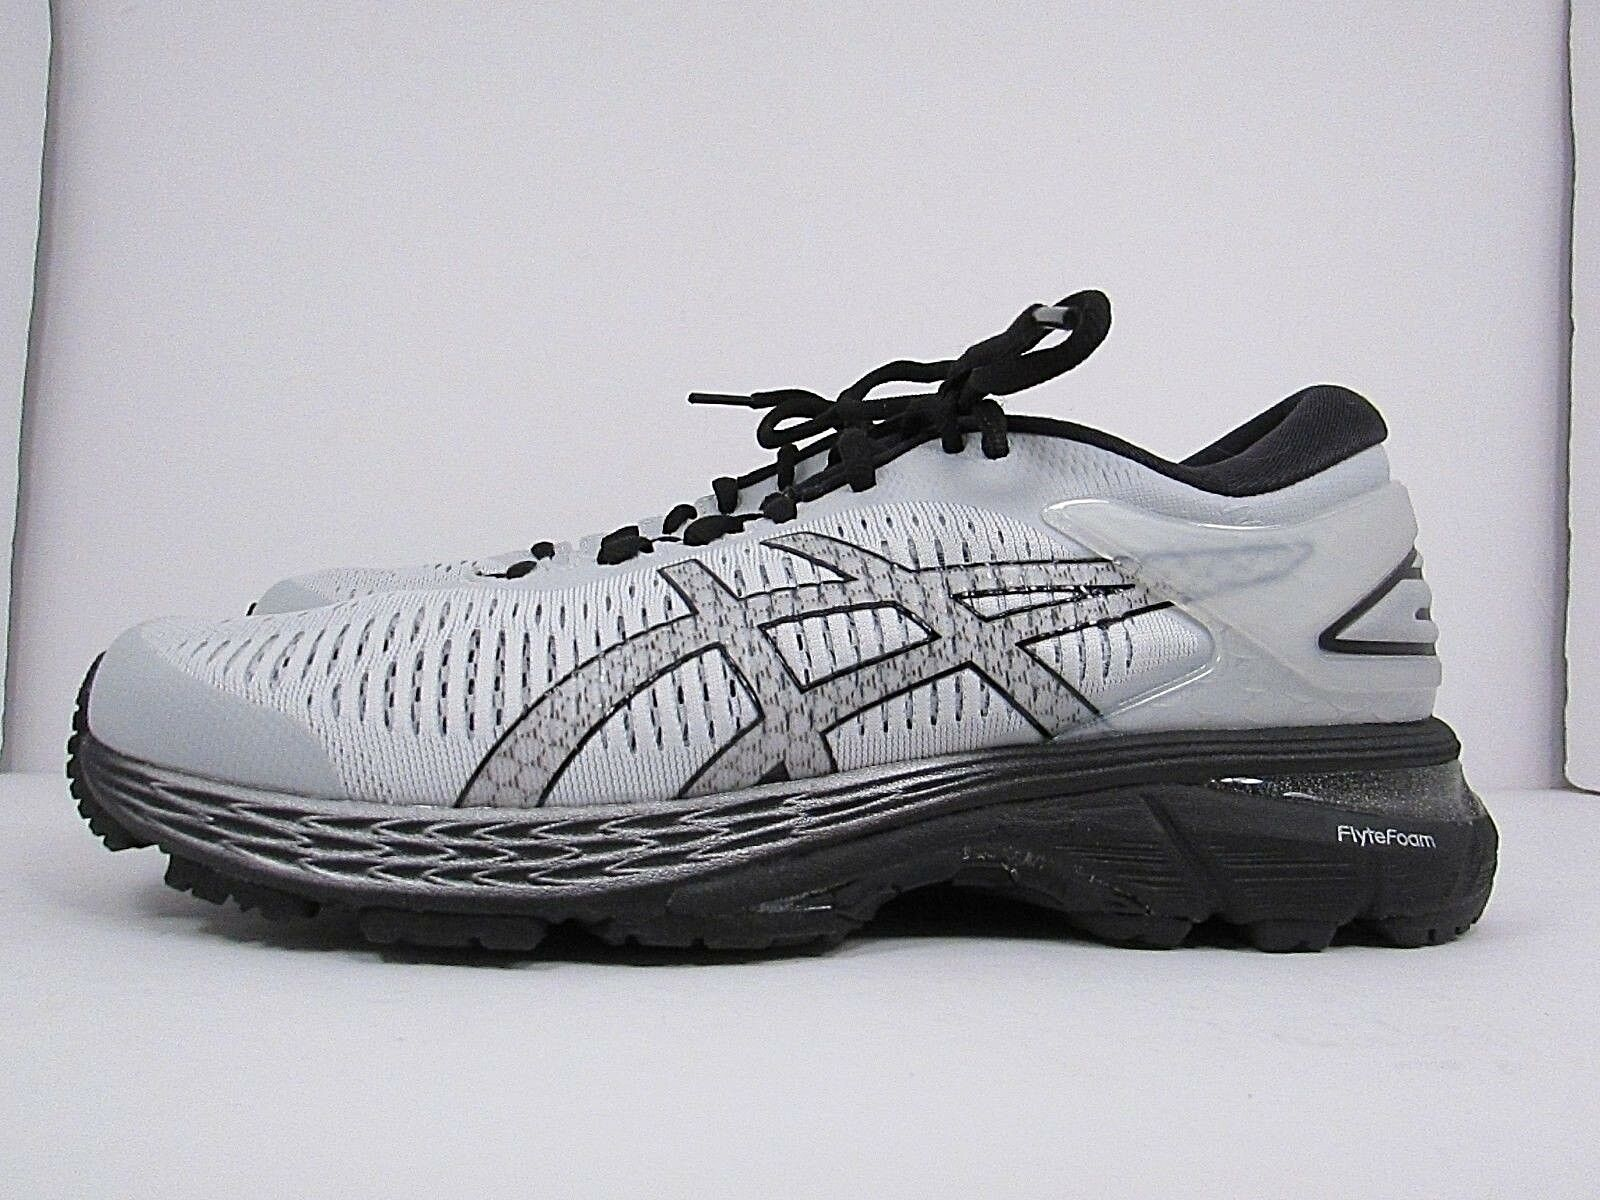 MEN'S ASICS GEL KAYANO 25 SIZE 7  WORN AROUND 2 MILES RUNNING SHOES NO INSOLES